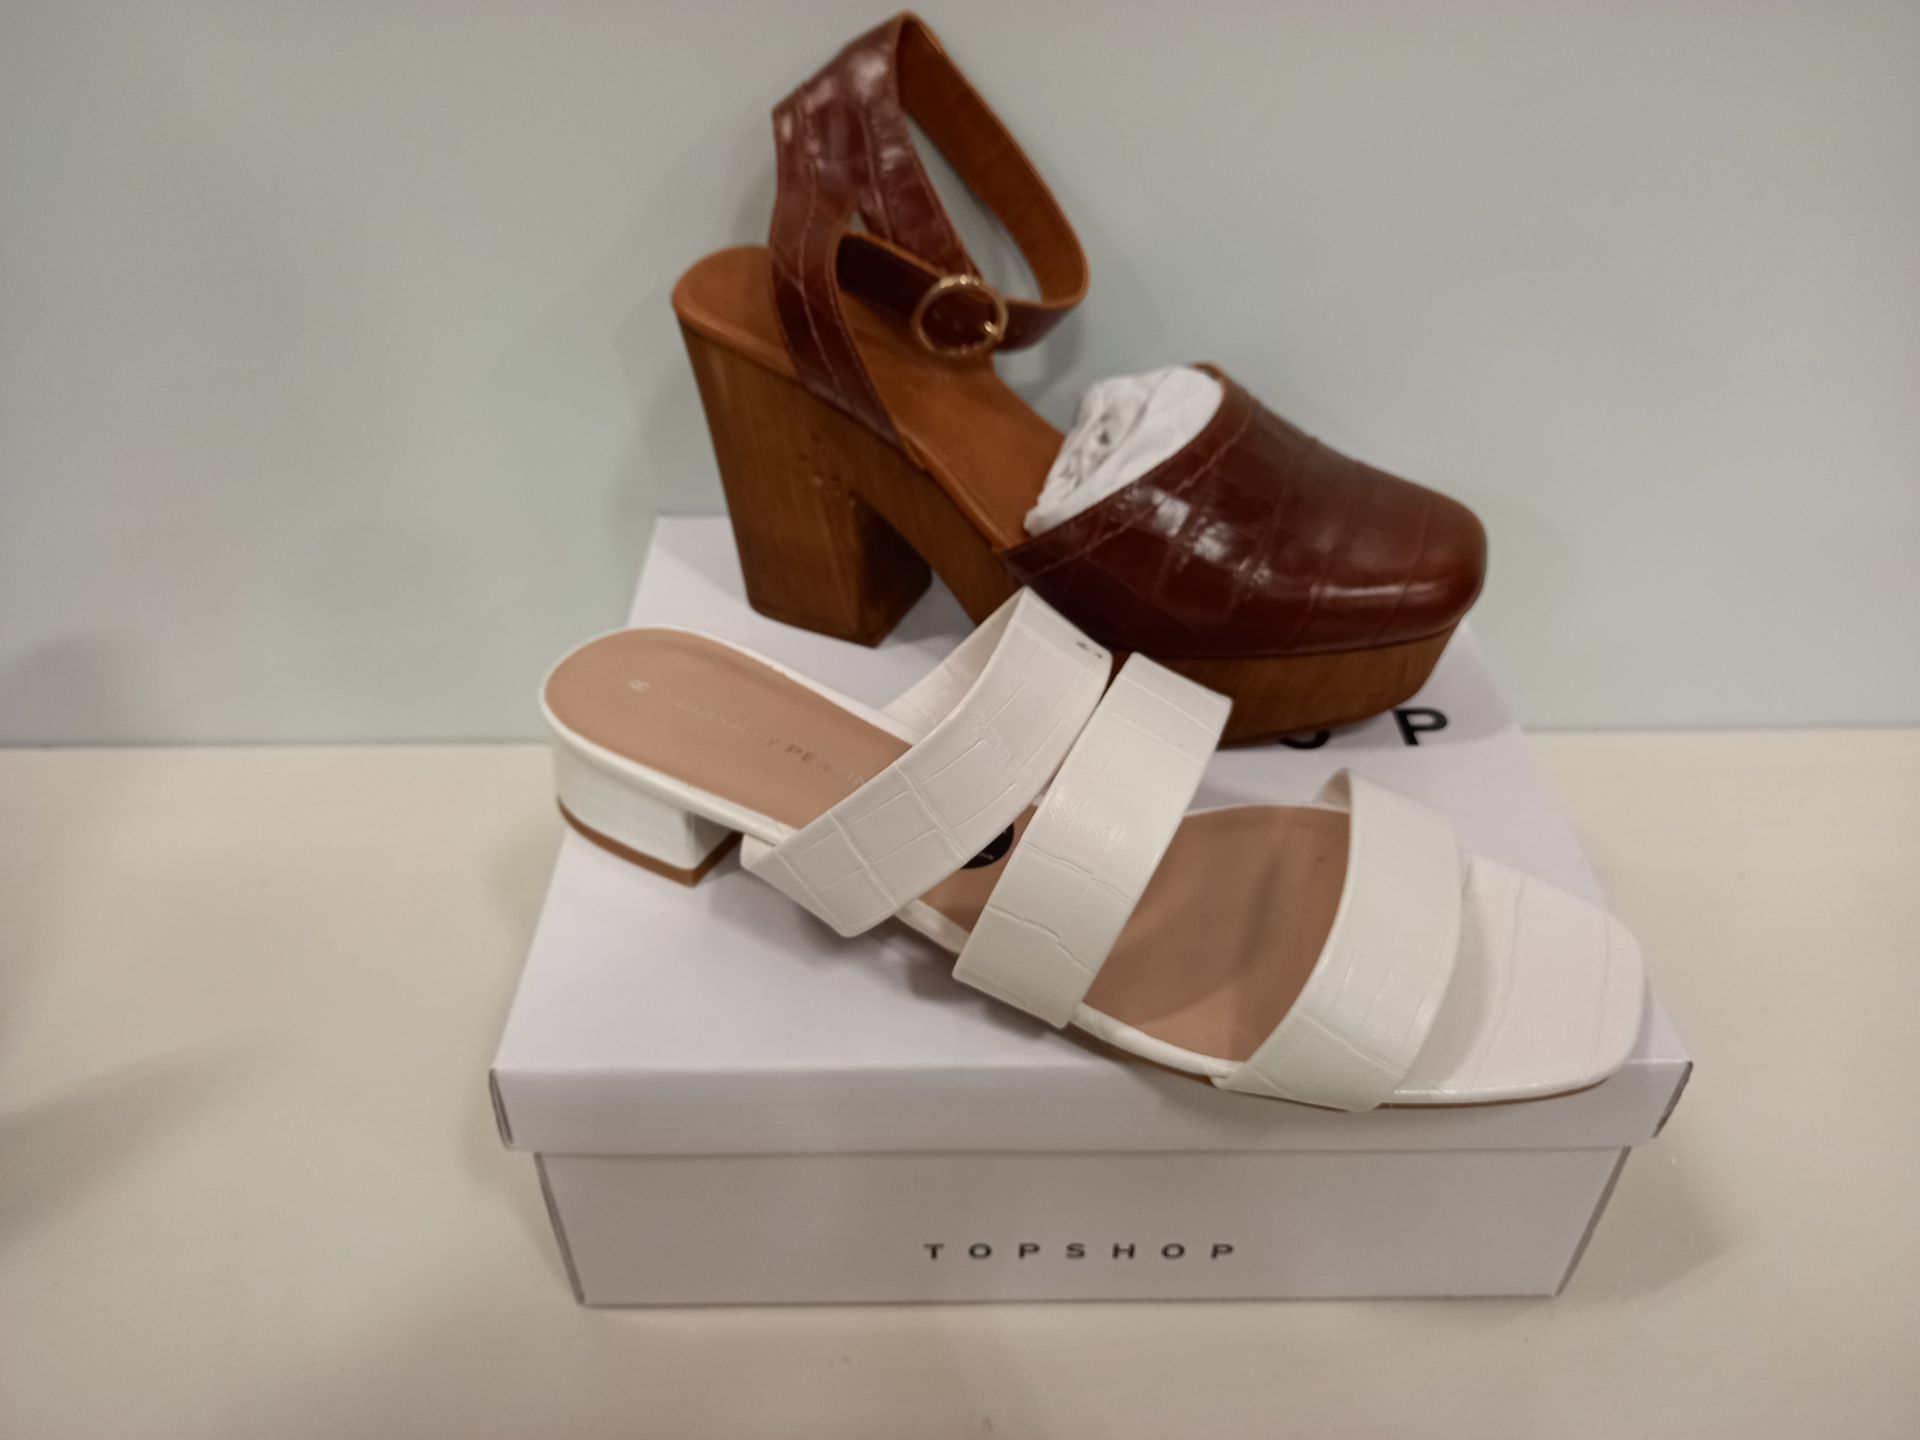 16 X BRAND NEW DOROTHY PERKINS AND TOPSHOP SHOES - 11 X DOROTHY PERKINS WHITE STORMY HEELED